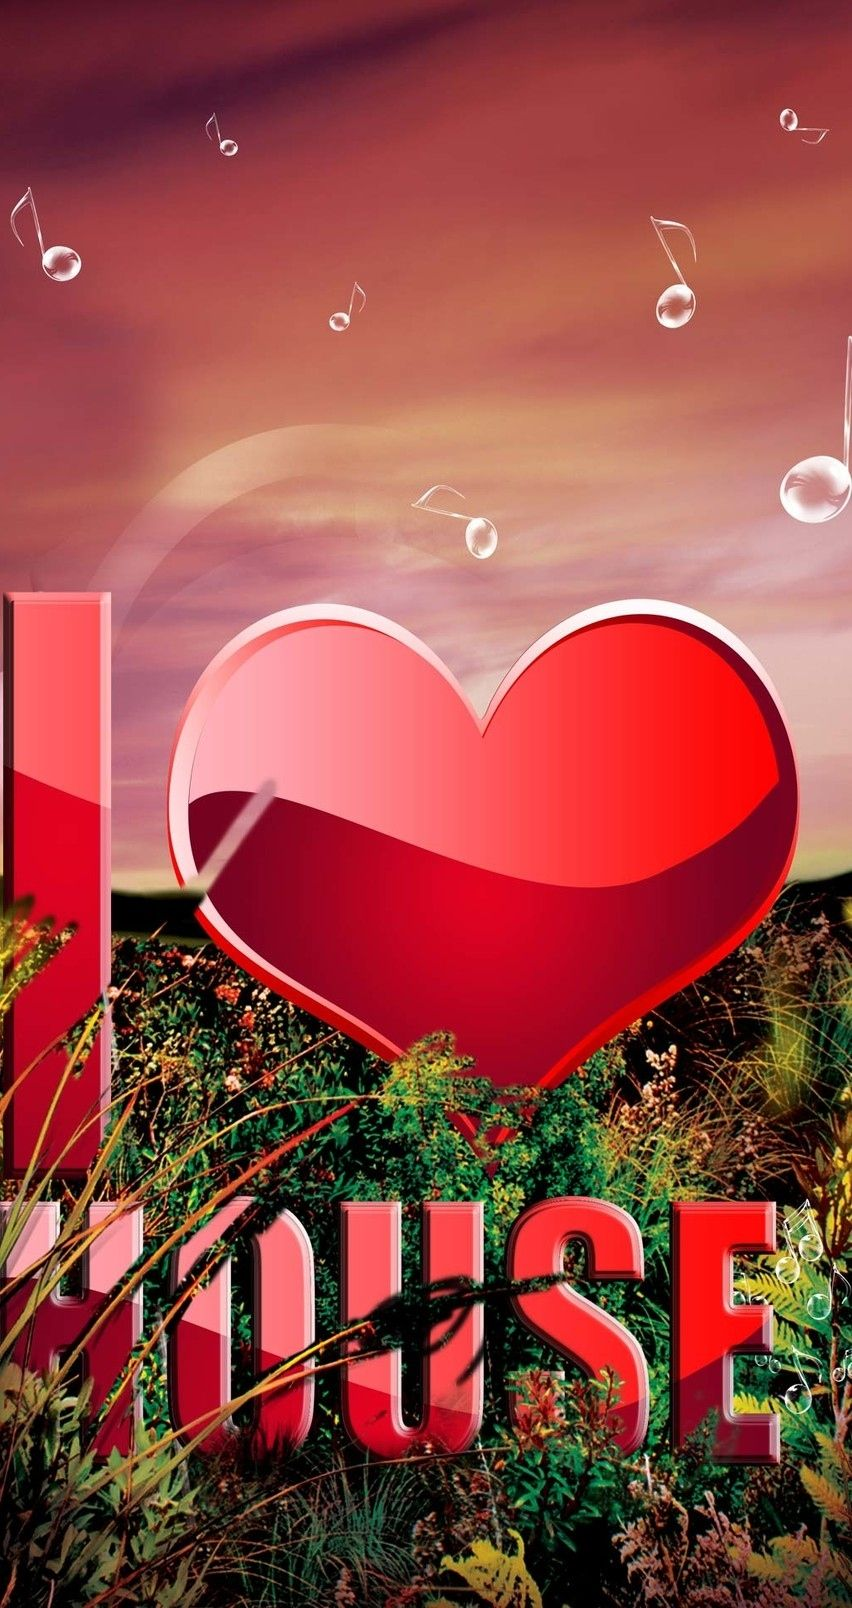 Wallpaper download new love - I Love House Music Iphone Wallpaper Download New I Love House Music Iphone Wallpaperfor Iphone Wallpaper Inhigh Definition You Can Find Other Wallpaper